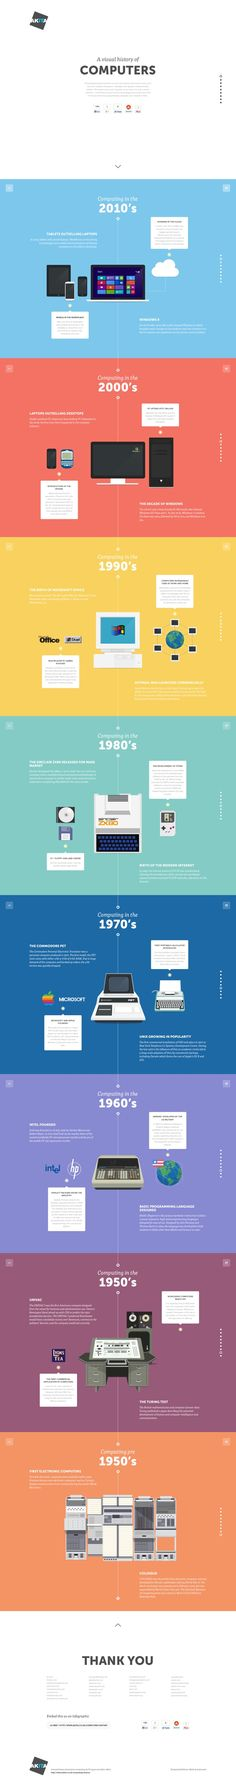 history of computers small   A Visual History of Computers